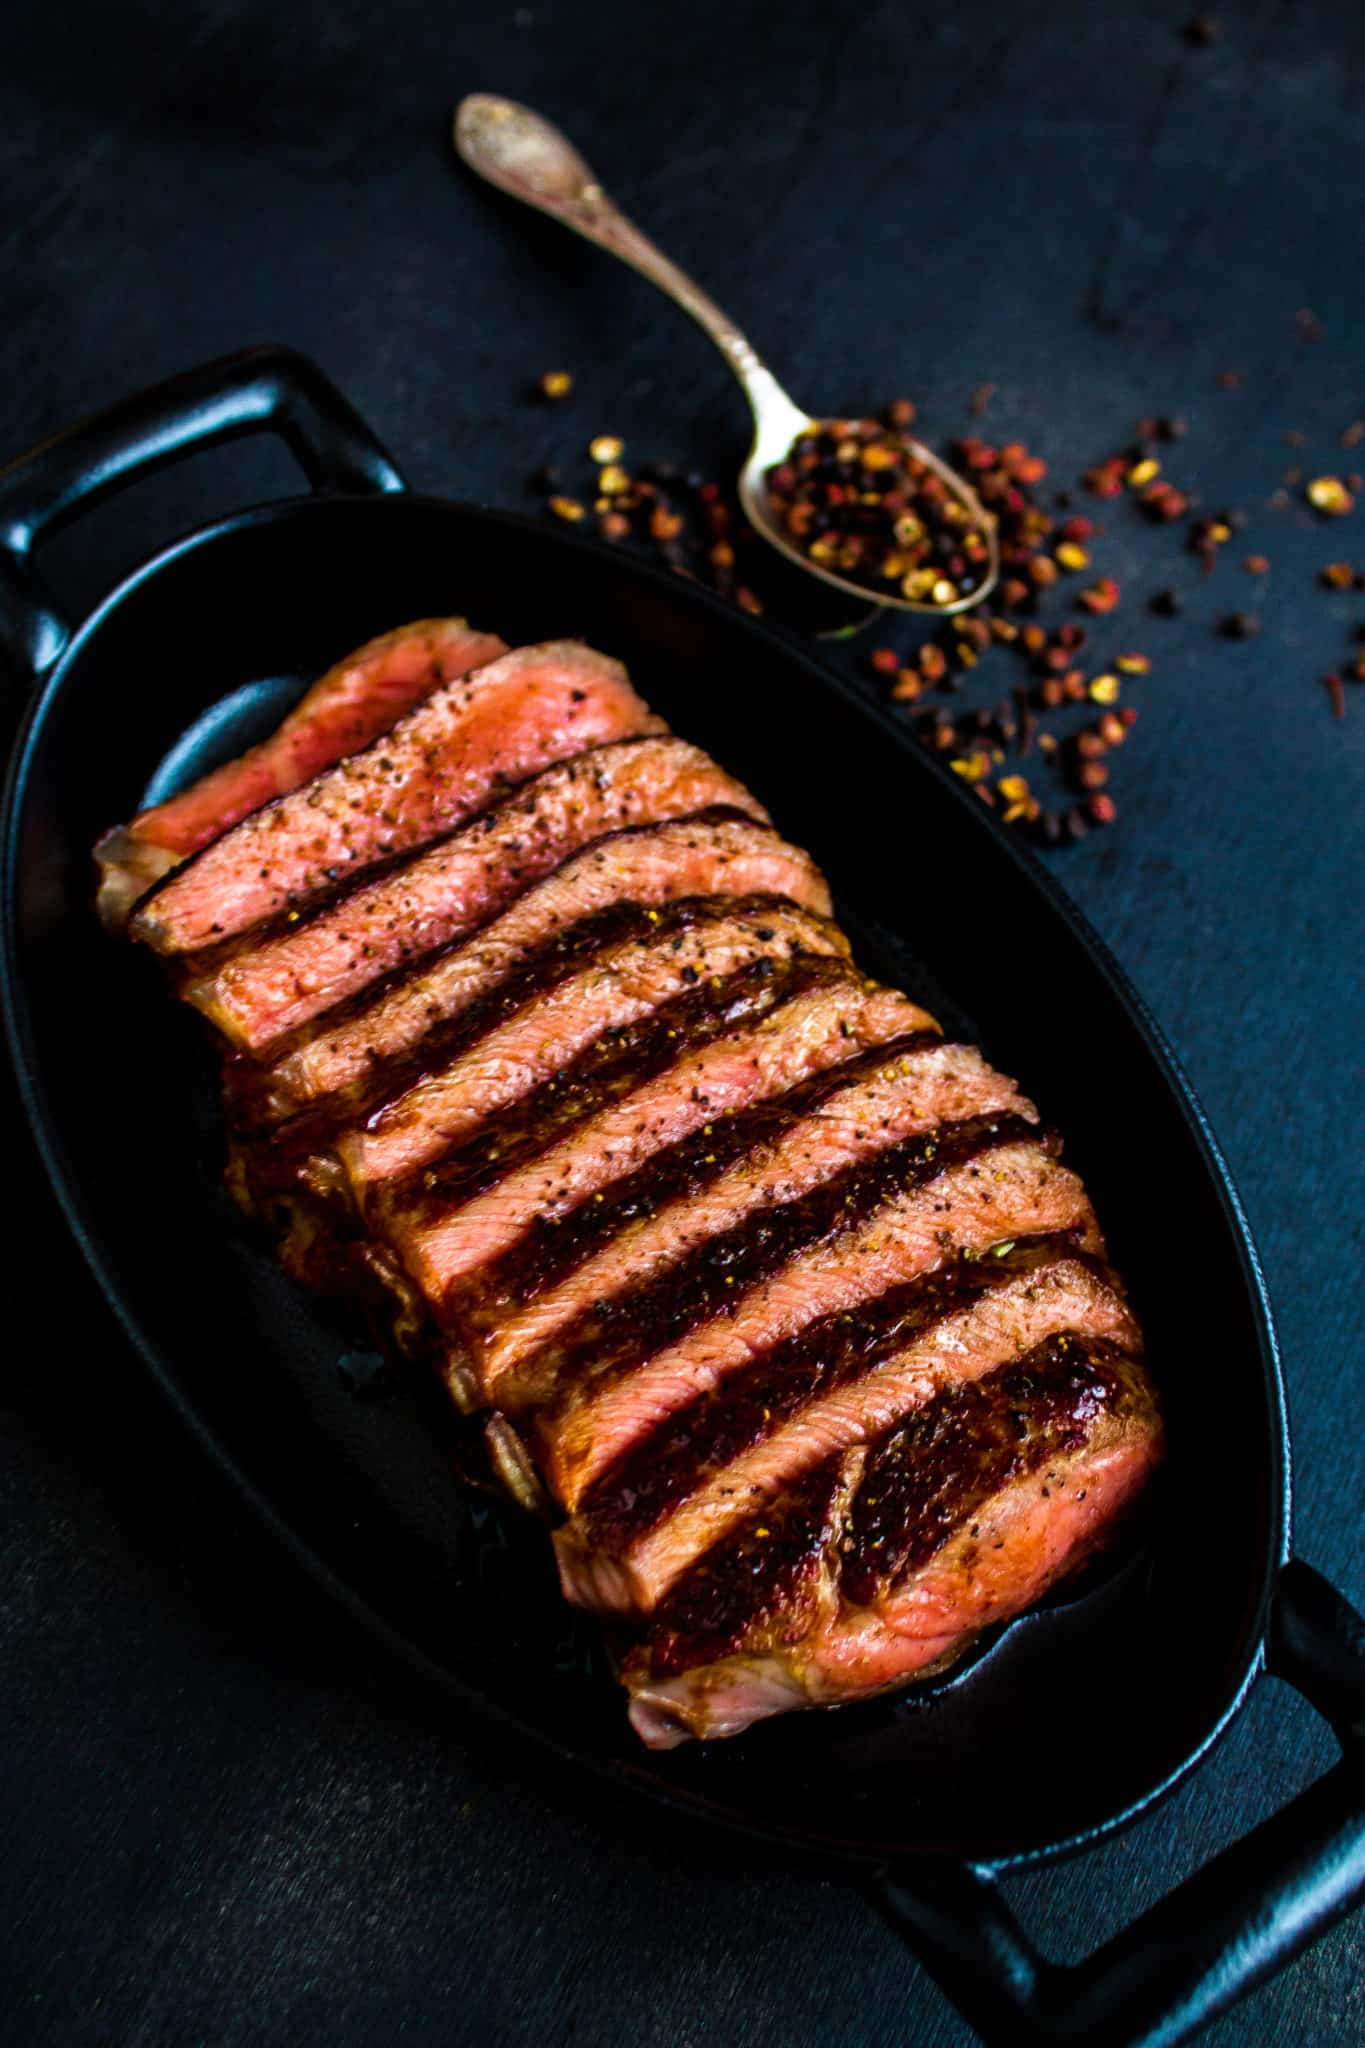 Help the kettle. How to fry the meat do not put pork on fire, but just fry